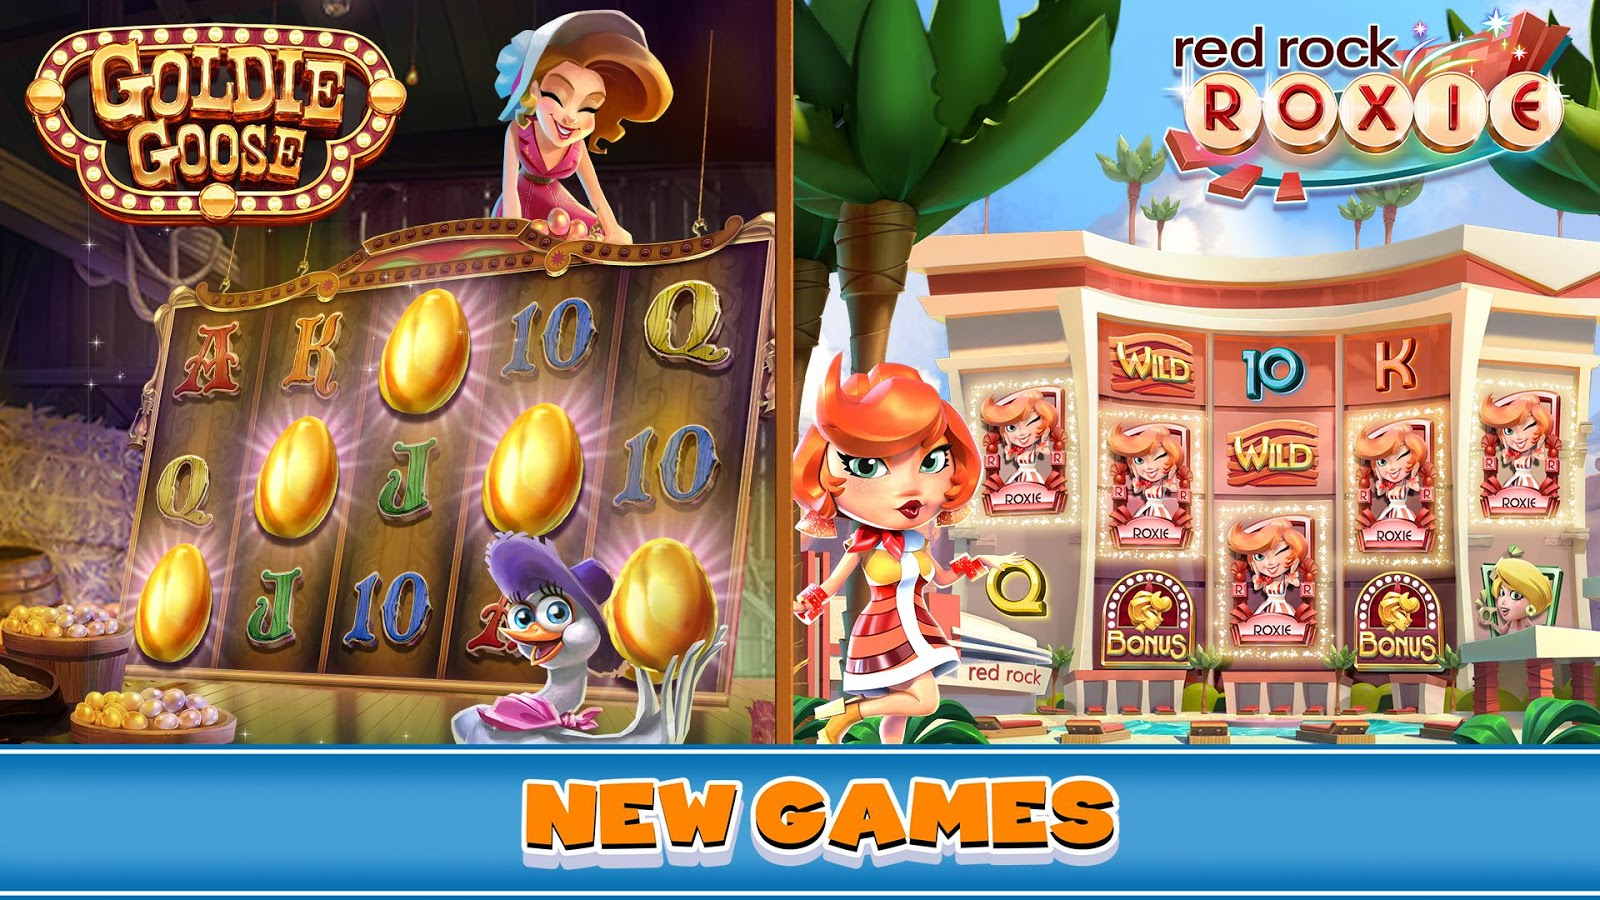 4/18/ · myVEGAS Slots - Free Las Vegas Casino Games is a casual slot game offering real rewards.This means that the winner can profit from real prizes such as a trip to some nice places in Las Vegas.Apart from that, it also offers an intuitive and eye-catching interface reflecting and introducing life in ing System: Iphone.